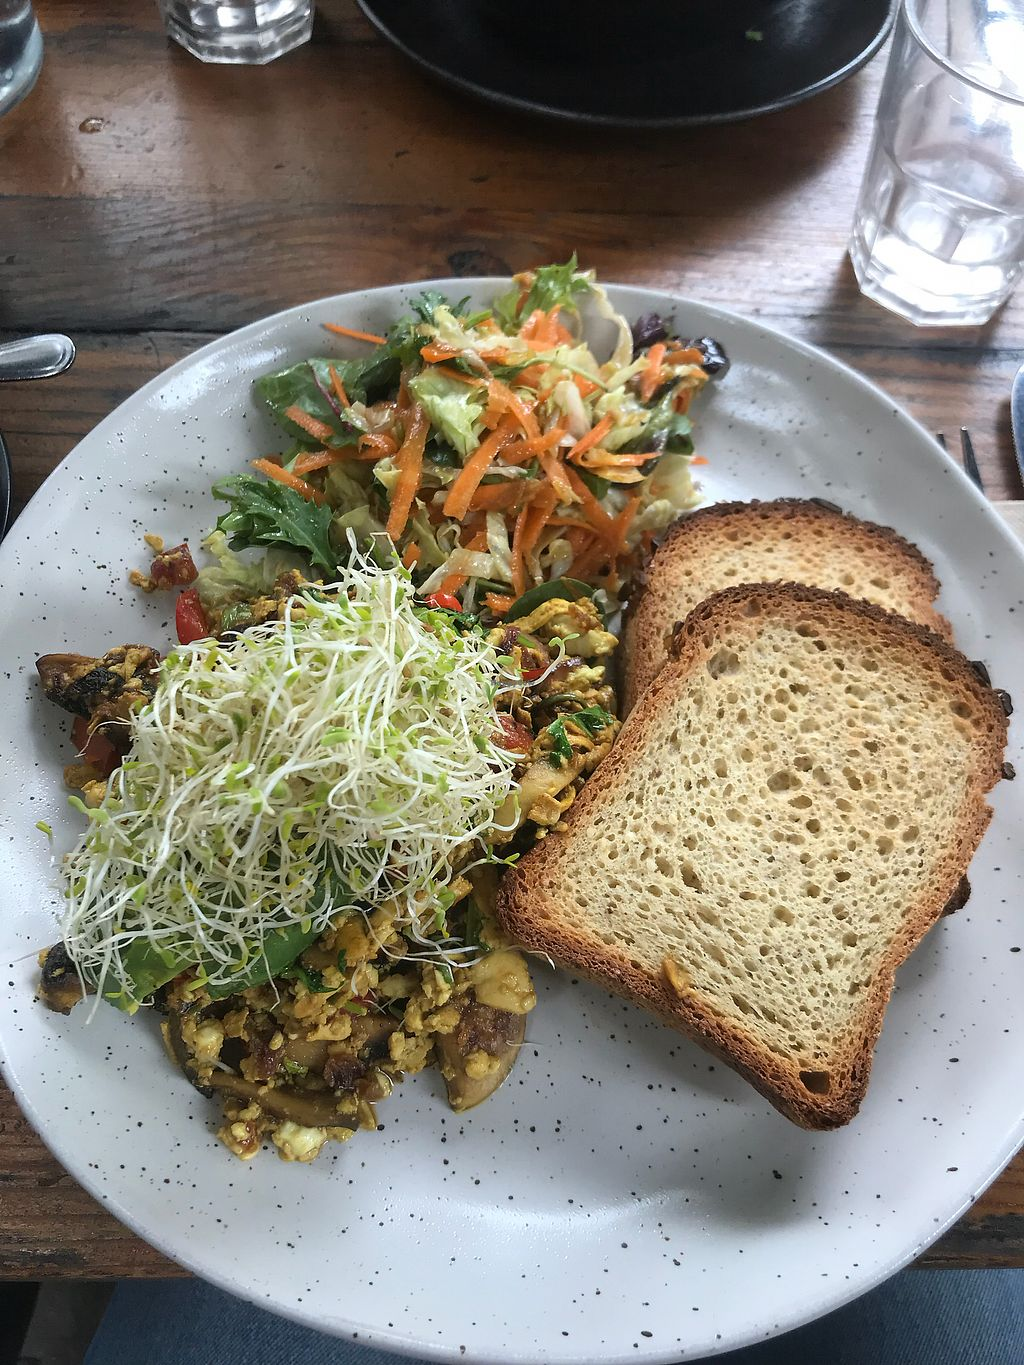 """Photo of Organic Produce Cafe  by <a href=""""/members/profile/LolaNachtigall"""">LolaNachtigall</a> <br/>Tofu Scramble with GF Bread <br/> March 31, 2018  - <a href='/contact/abuse/image/14067/378694'>Report</a>"""